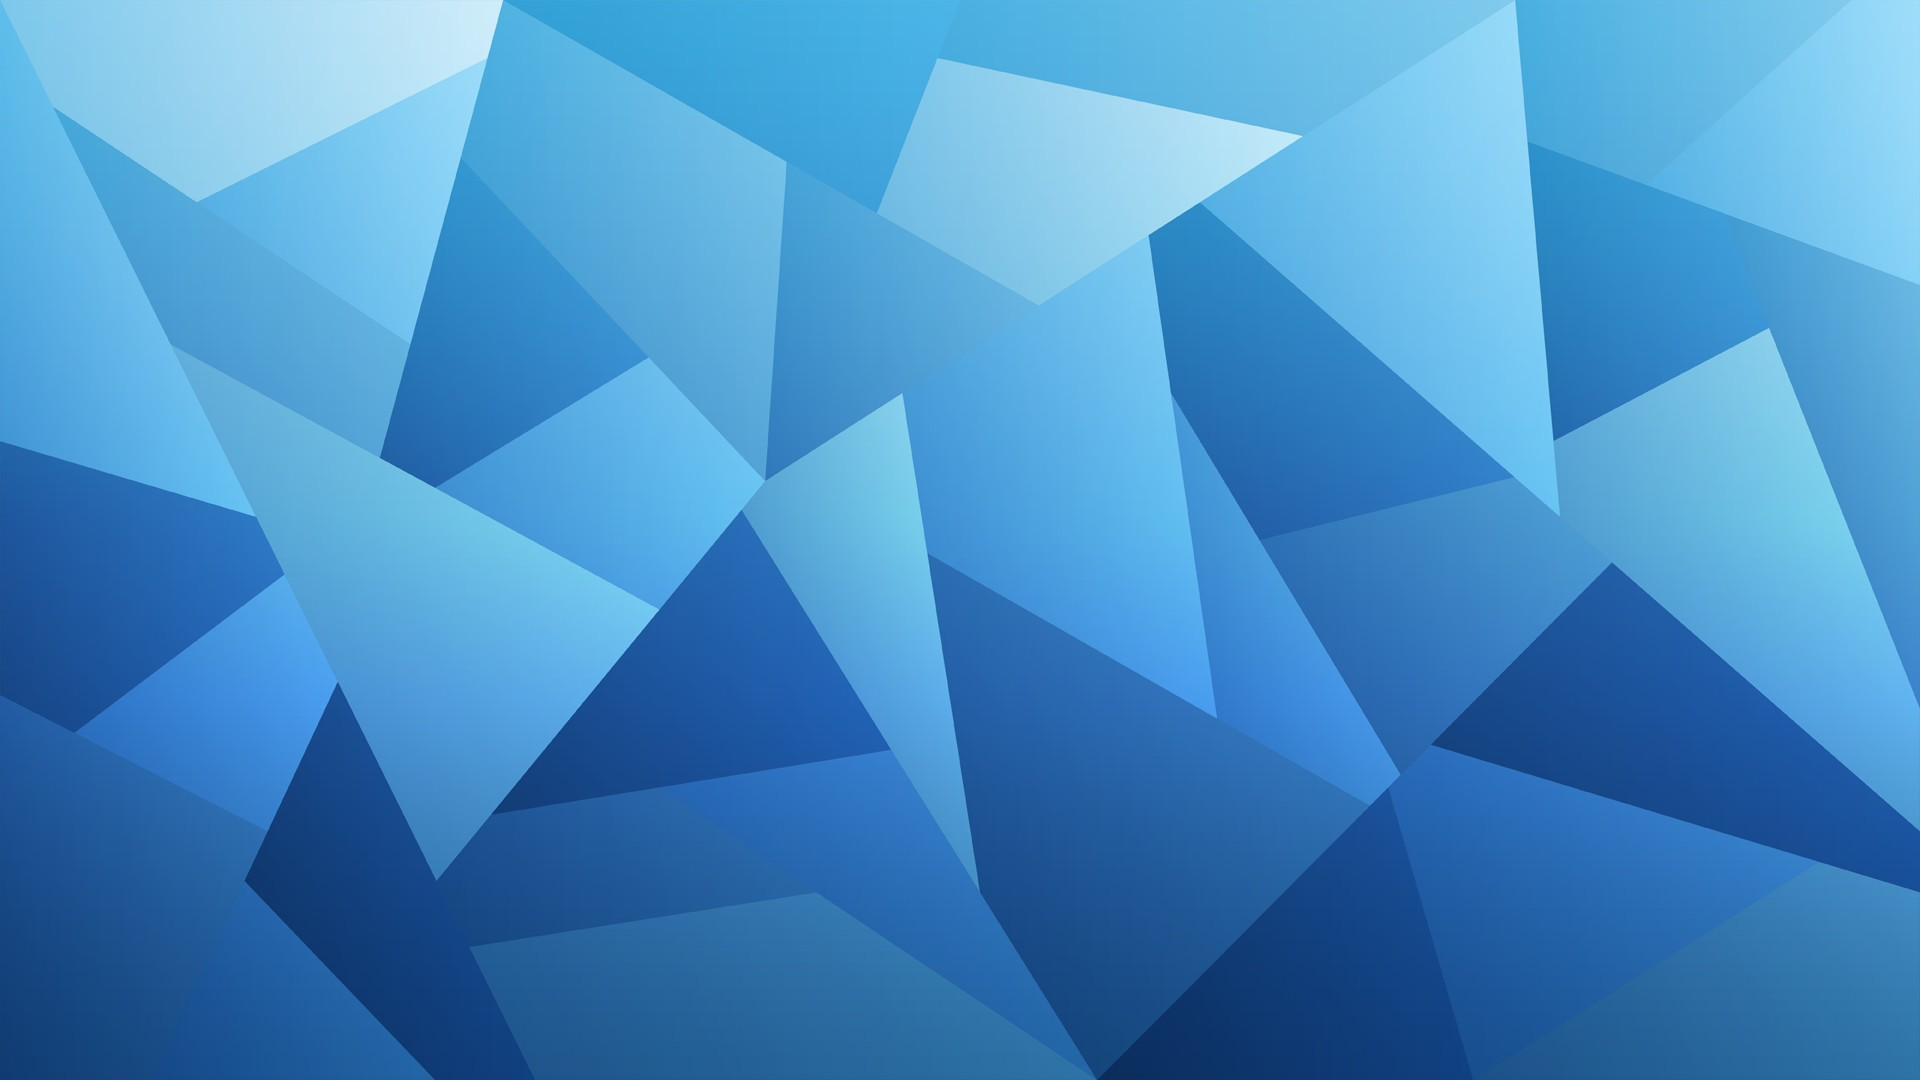 Triangle background ·① Download free backgrounds for ...